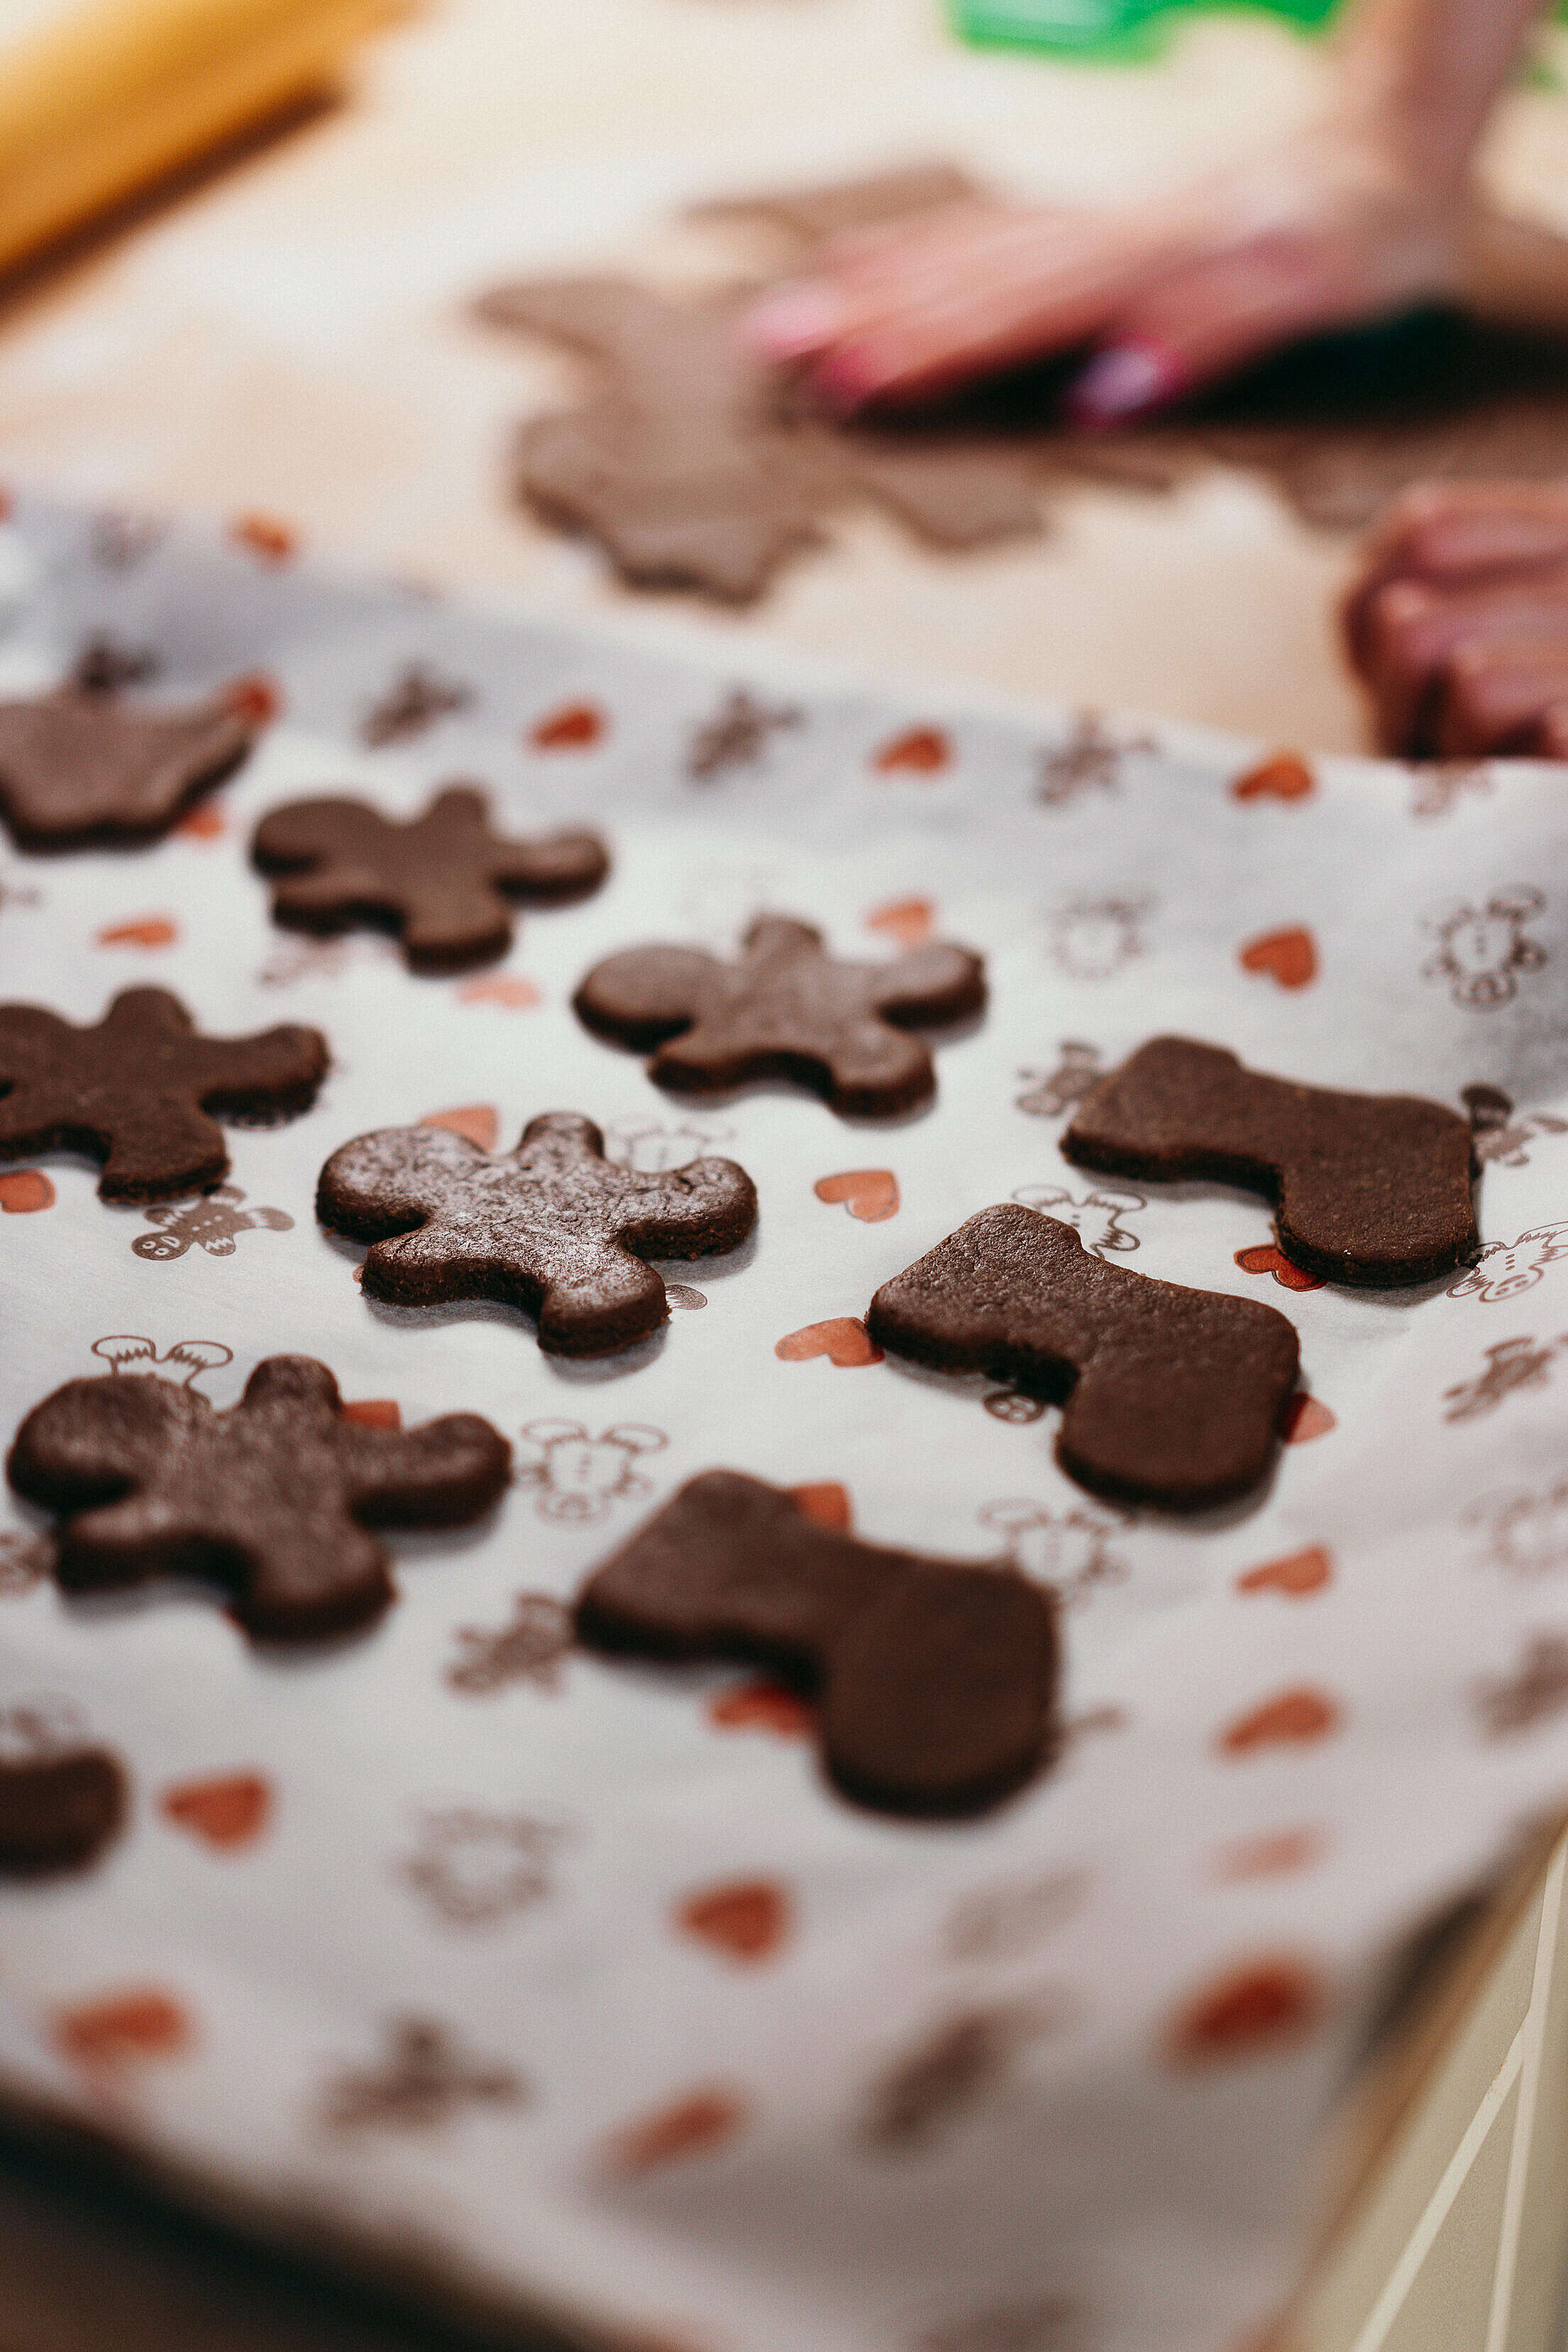 Cutting Christmas Gingerbread Free Stock Photo